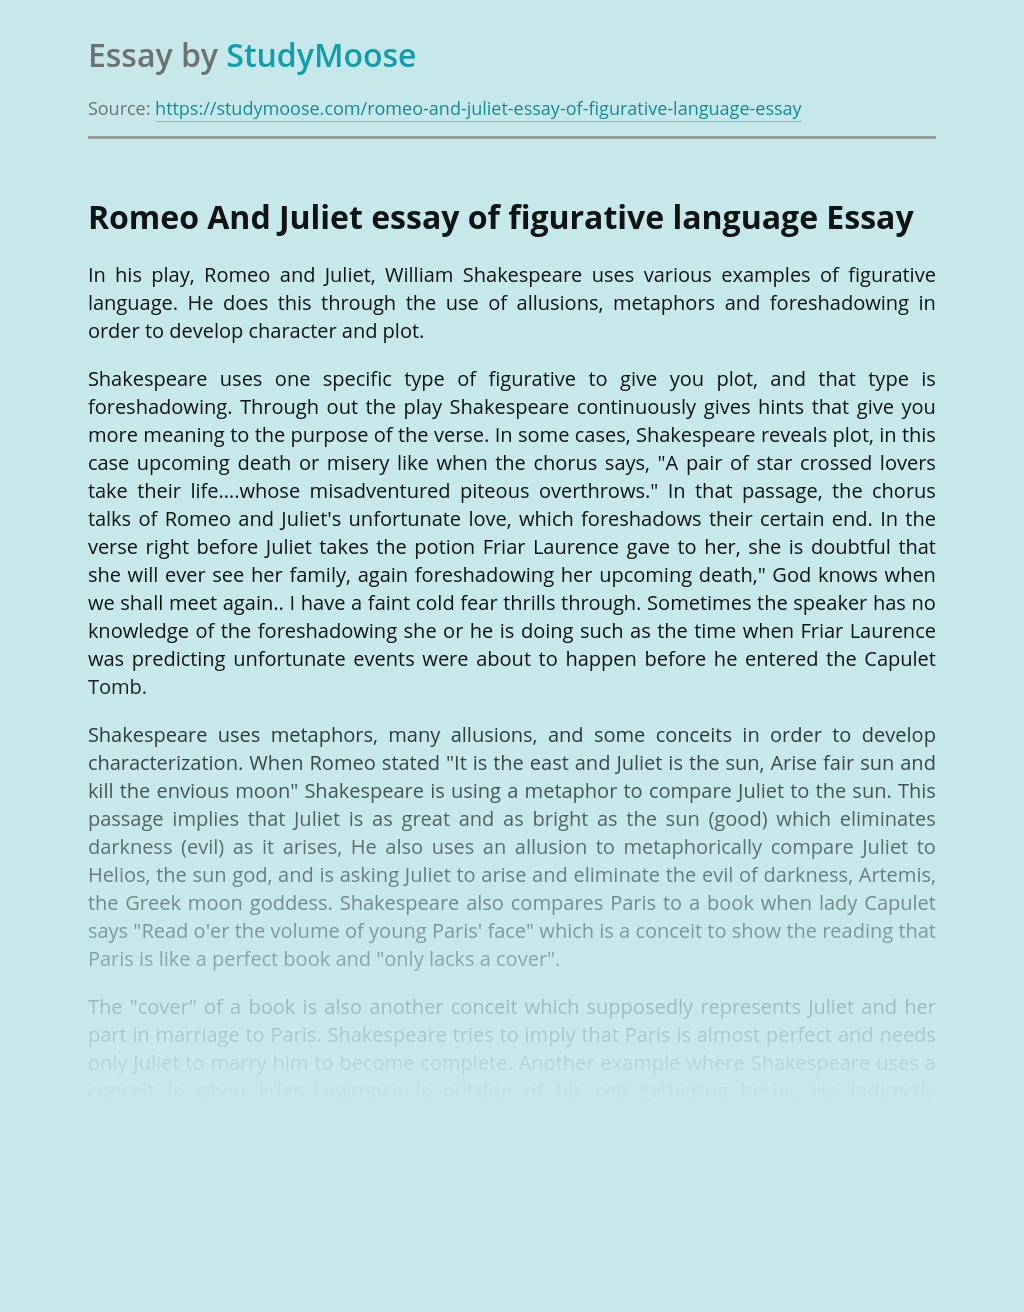 Romeo And Juliet essay of figurative language